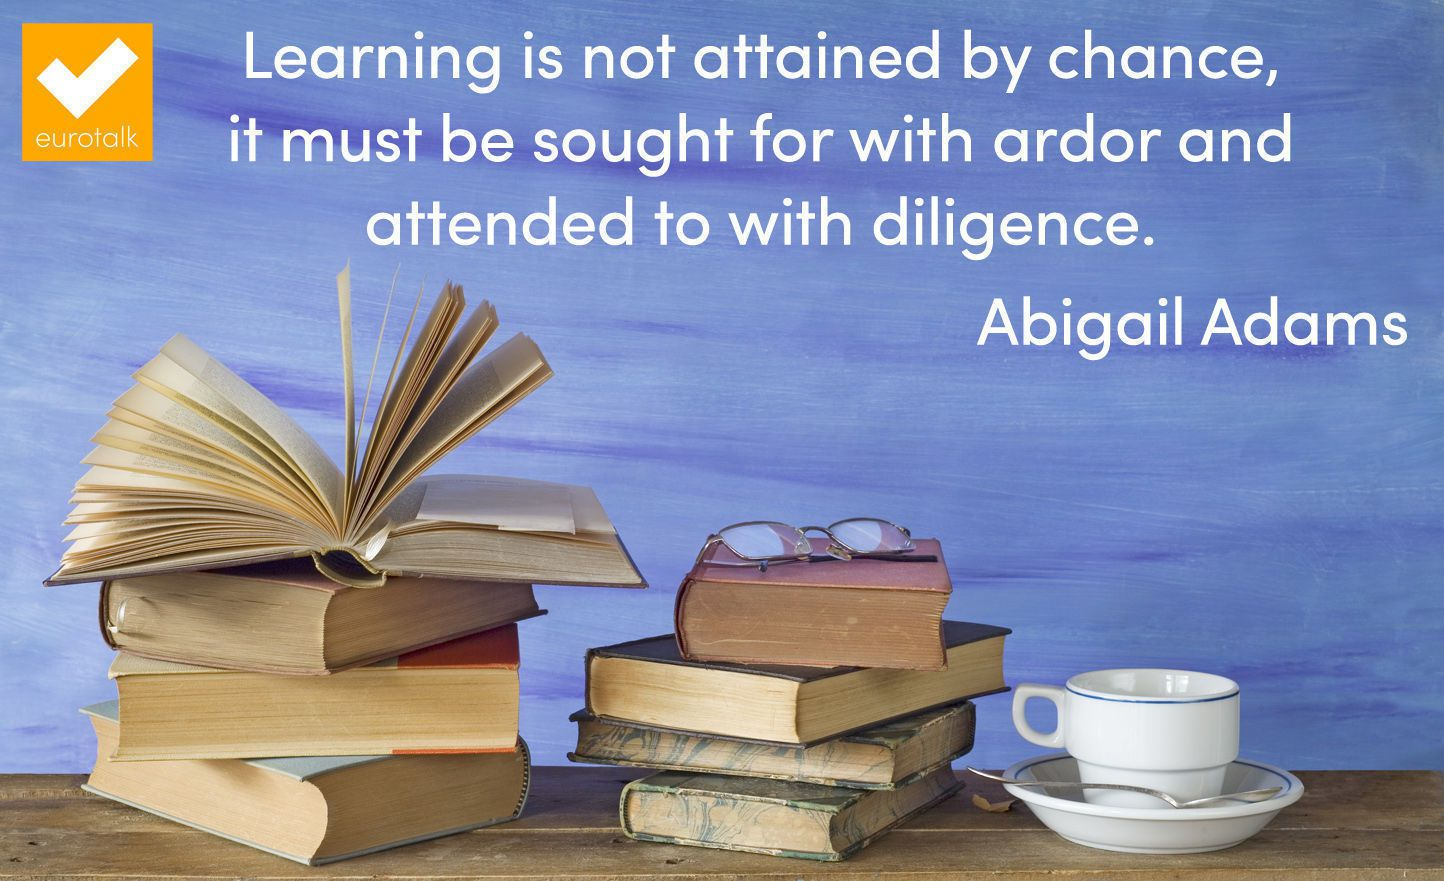 """""""Learning is not attained by chance, it must be sought for with ardor and attended to with diligence."""" Abigail Adams"""